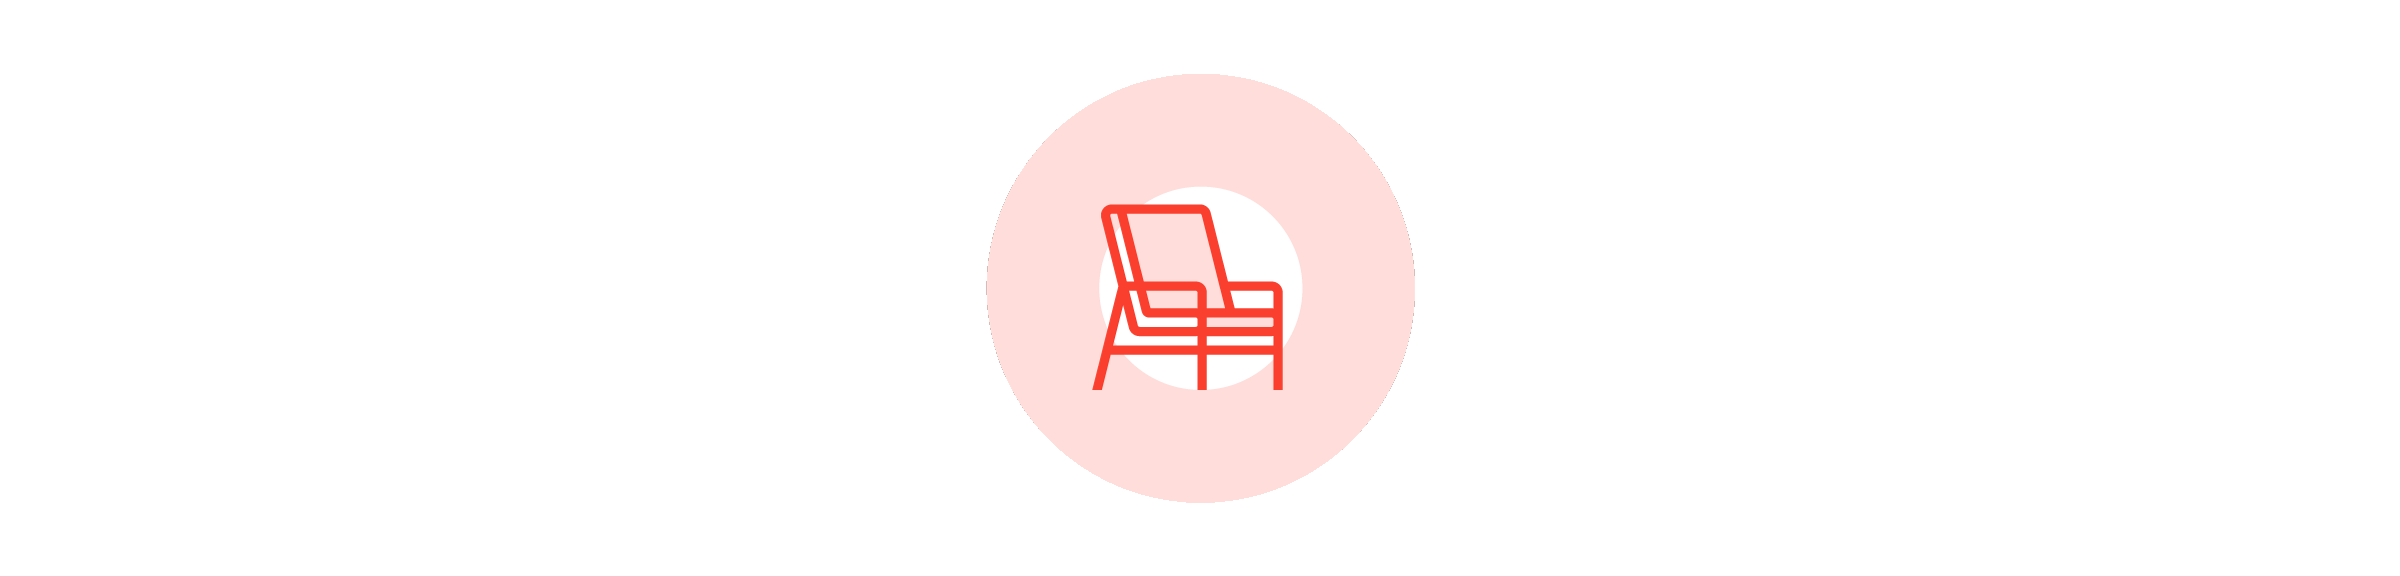 CampbellNoelle_TheFurnitch_branding-chair3@2x.png